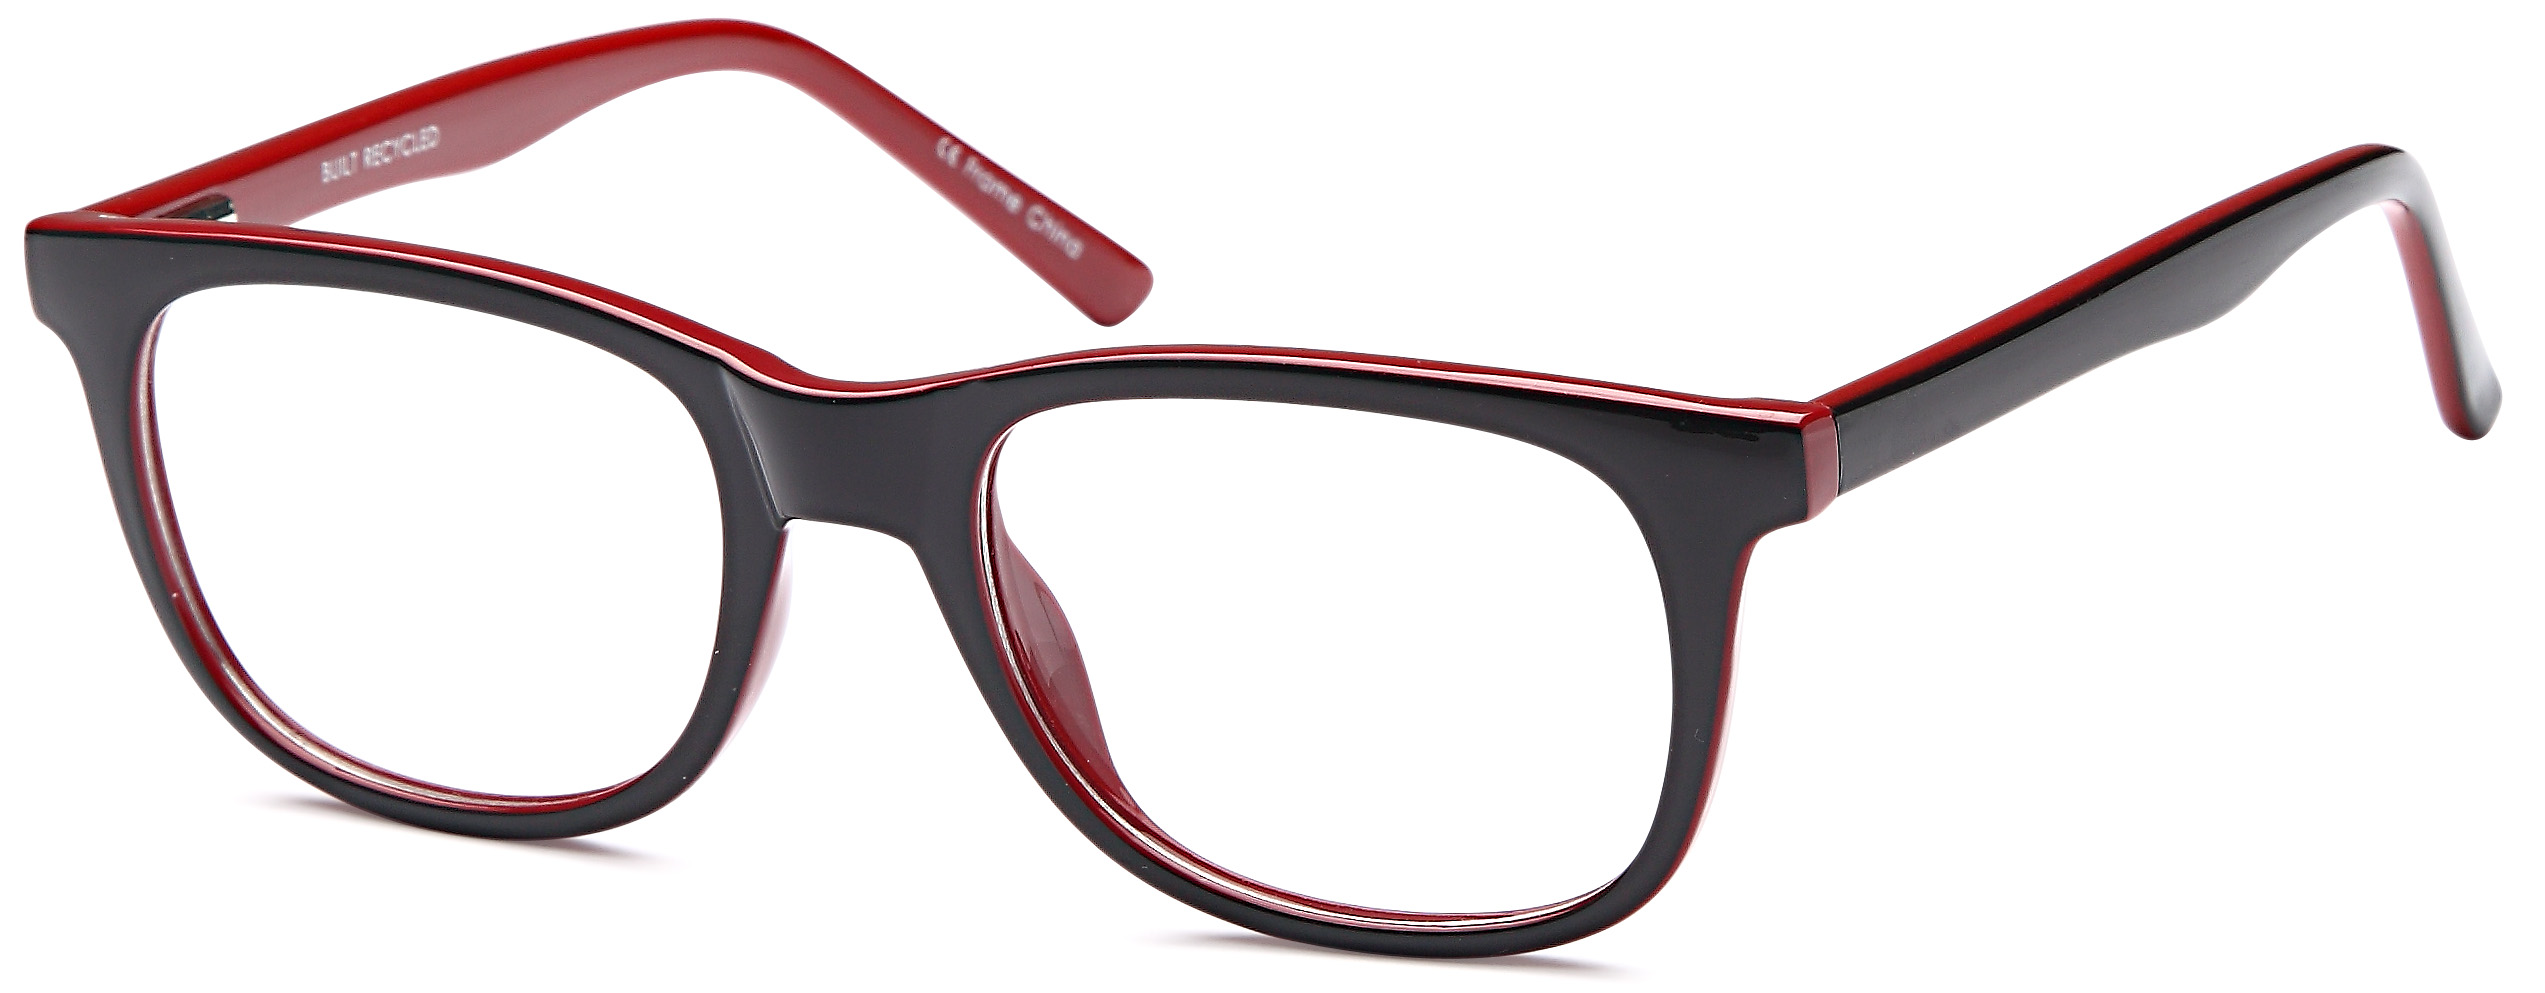 DALIX Glasses Frames in Black Red Womens Trendy Reading ...